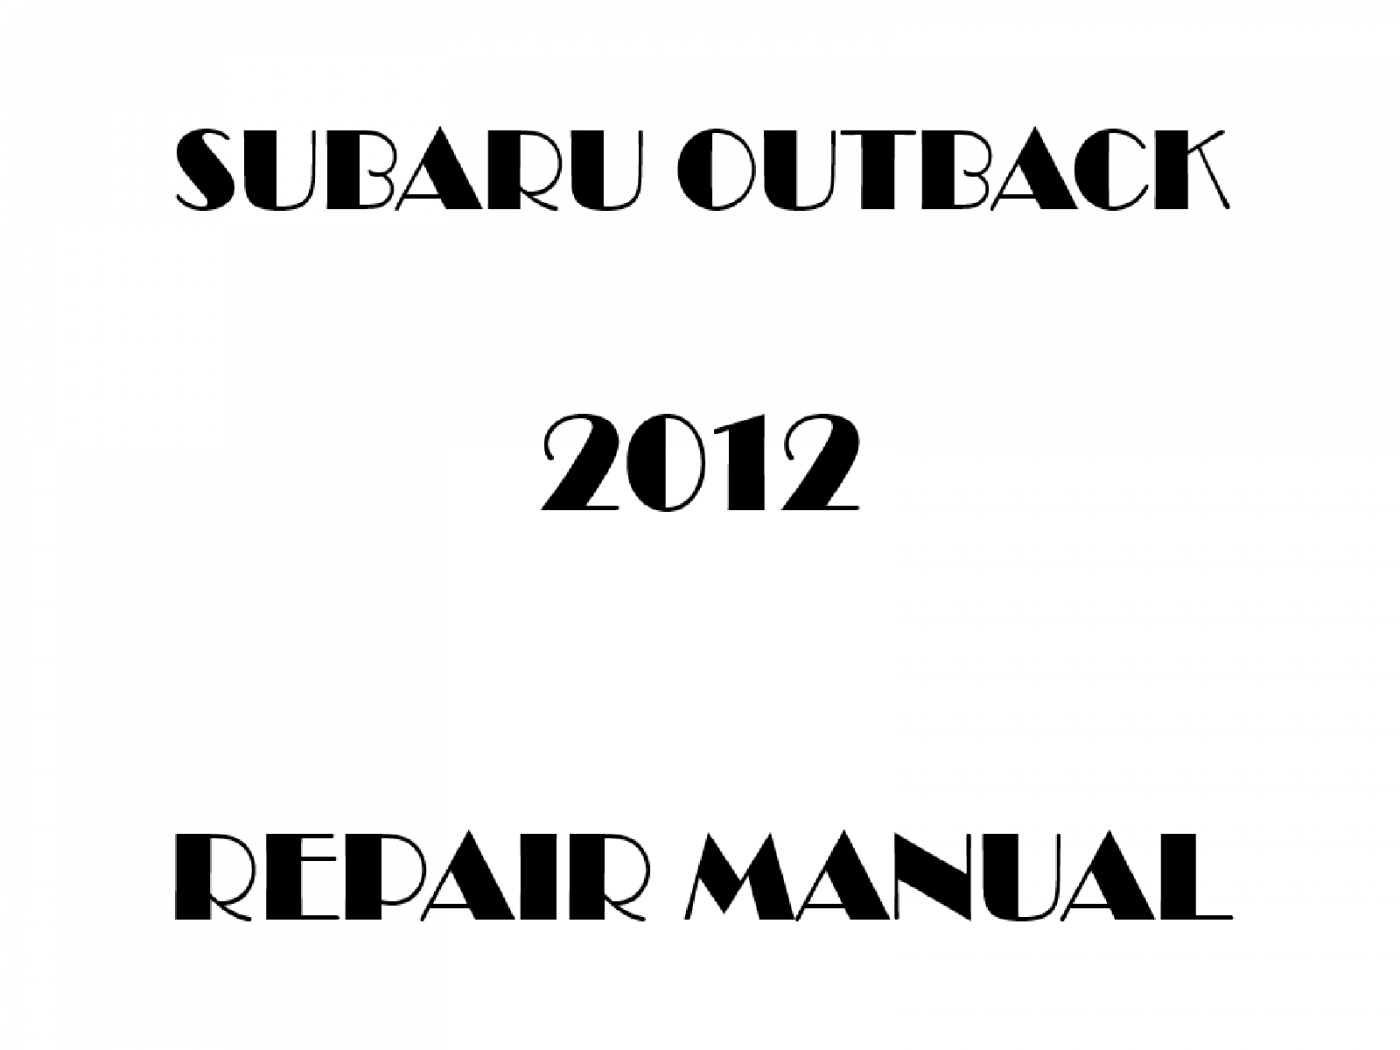 2012 Subaru Outback repair manual